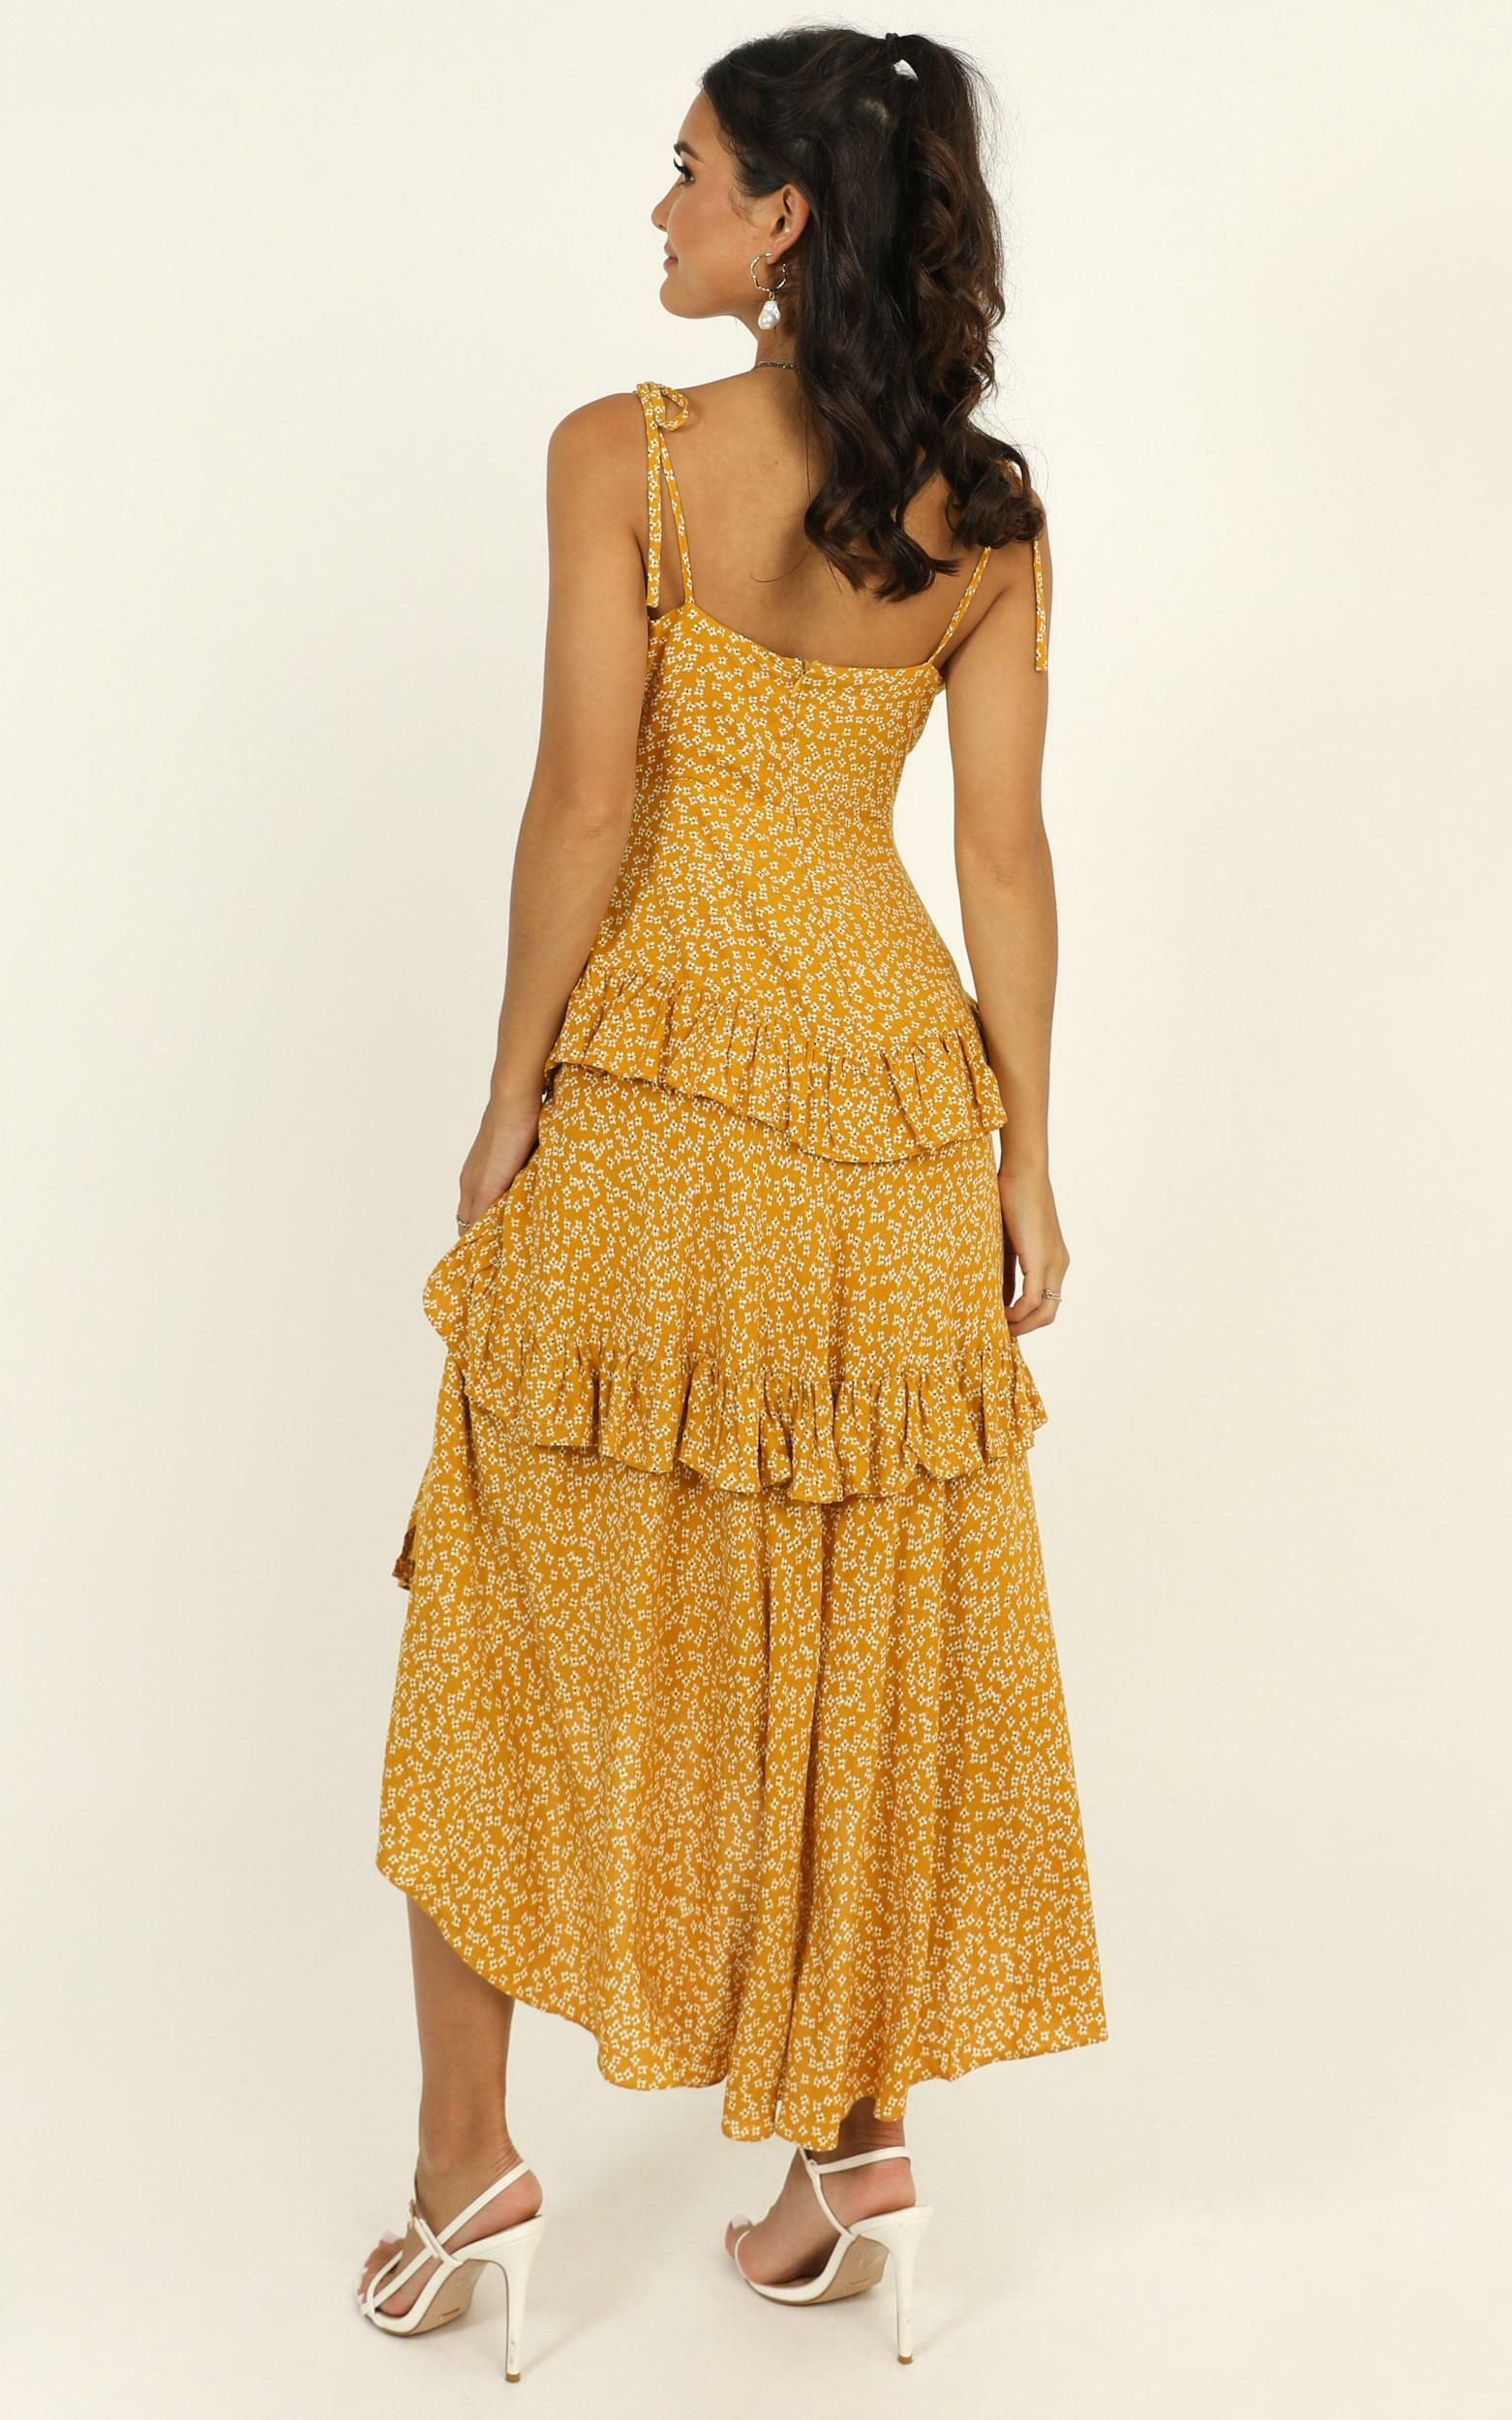 Elite Class Dress in mustard floral - 14 (XL), Mustard, hi-res image number null